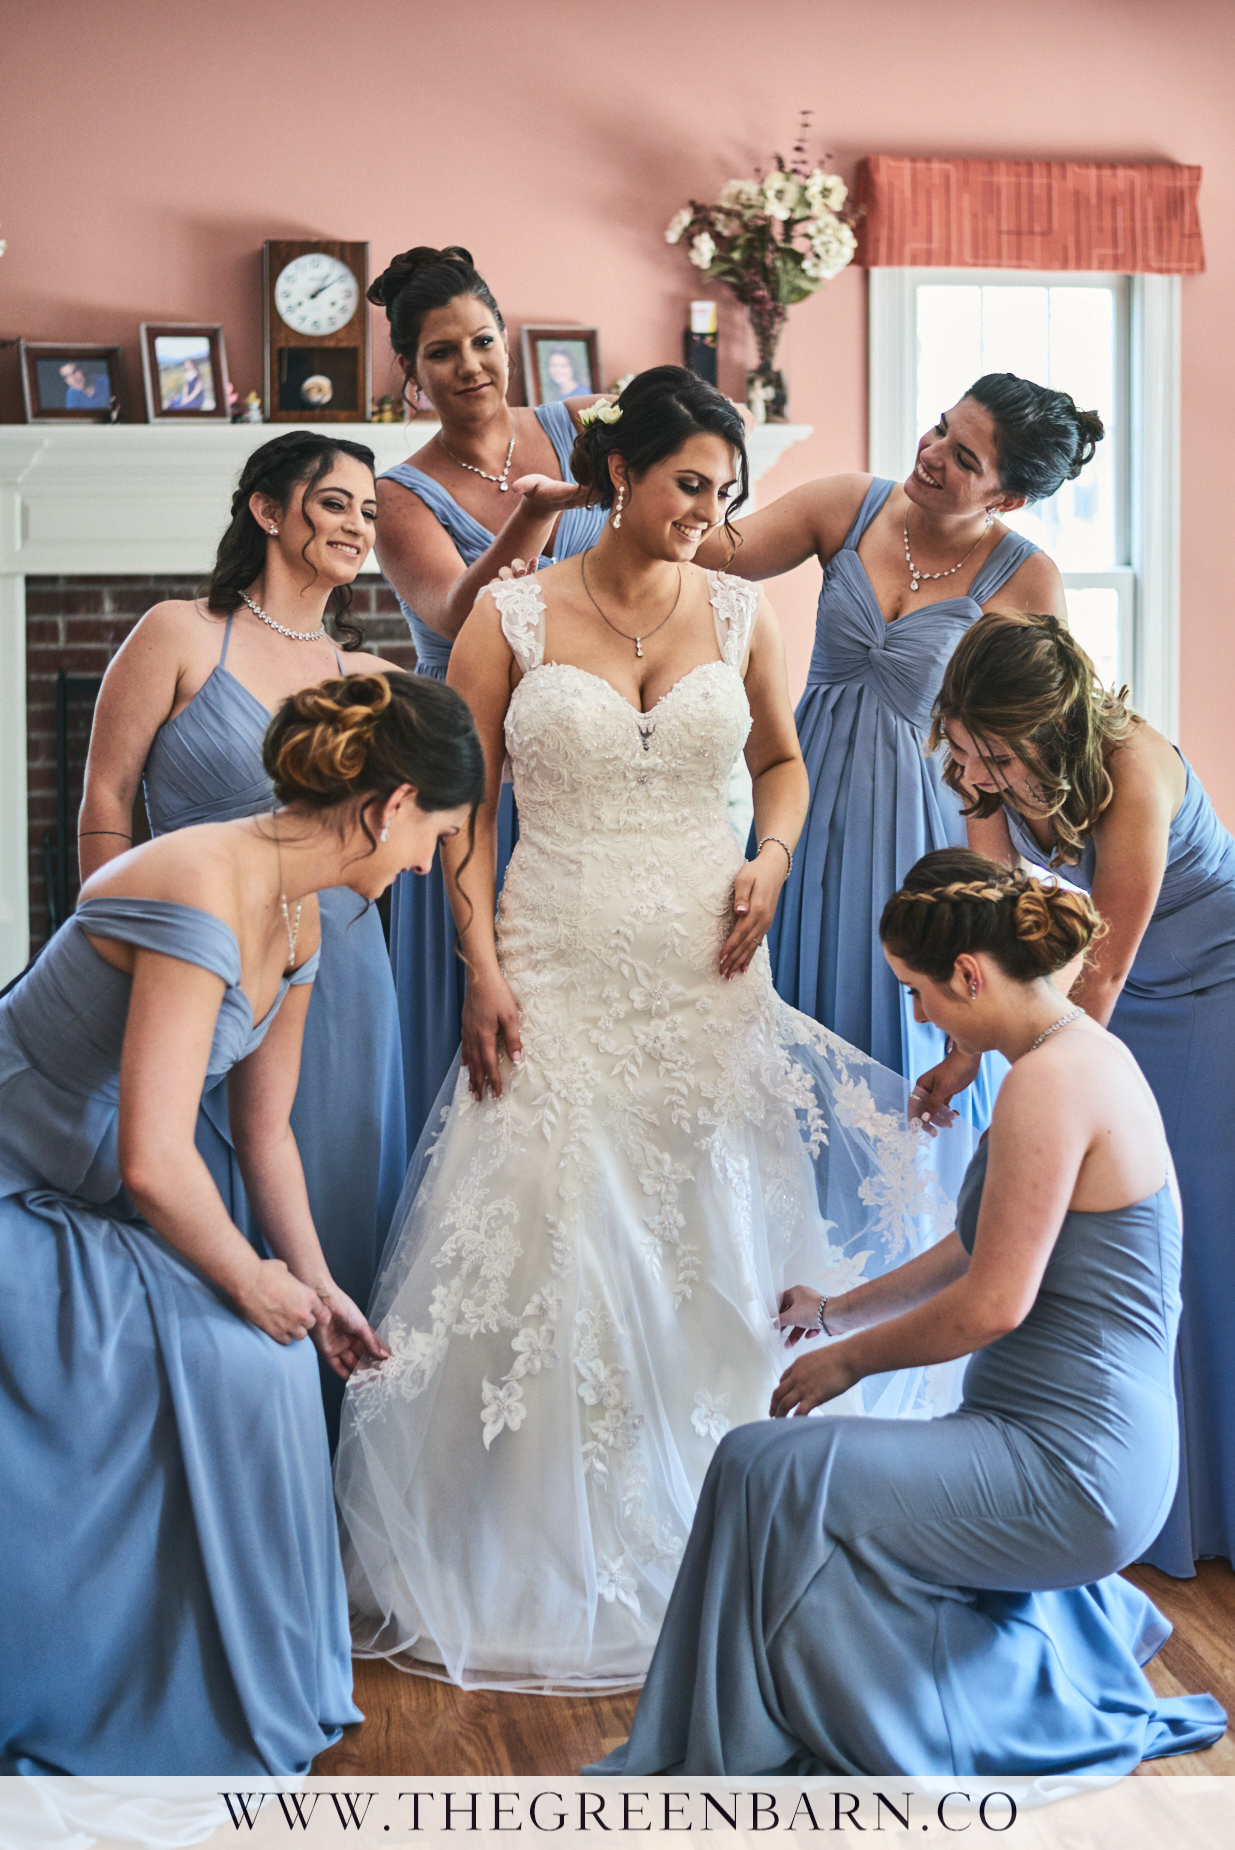 Bride Getting Ready with Bridesmaids in Blue Photo by Cate Bligh of The Green Barn Wedding Photography LLC